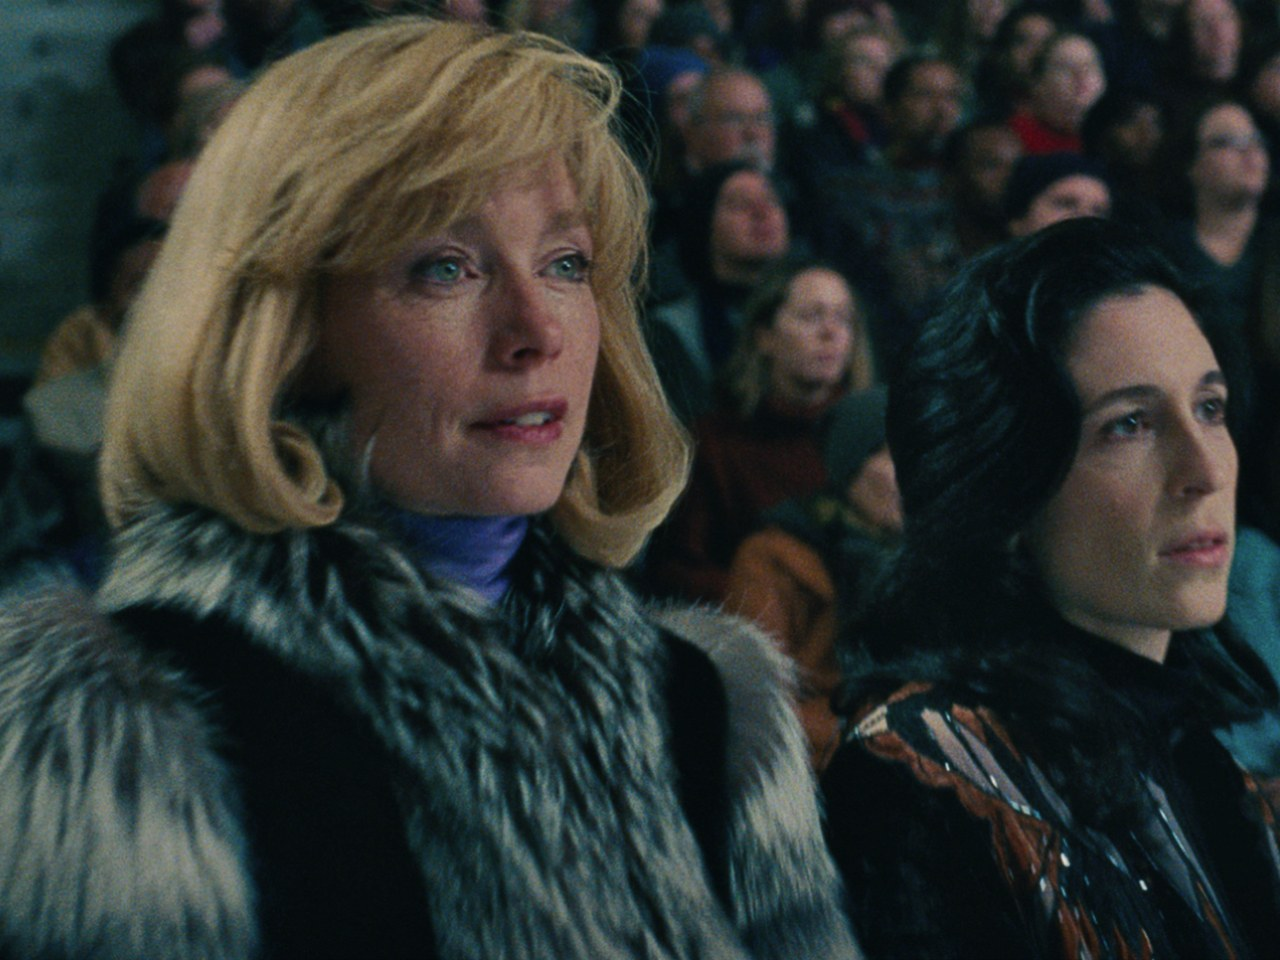 5--Coach-Diane-Rawlinson-(Julianne-Nicholson)-watches-the-ice-in-I,-TONYA,-courtesy-of-NEON